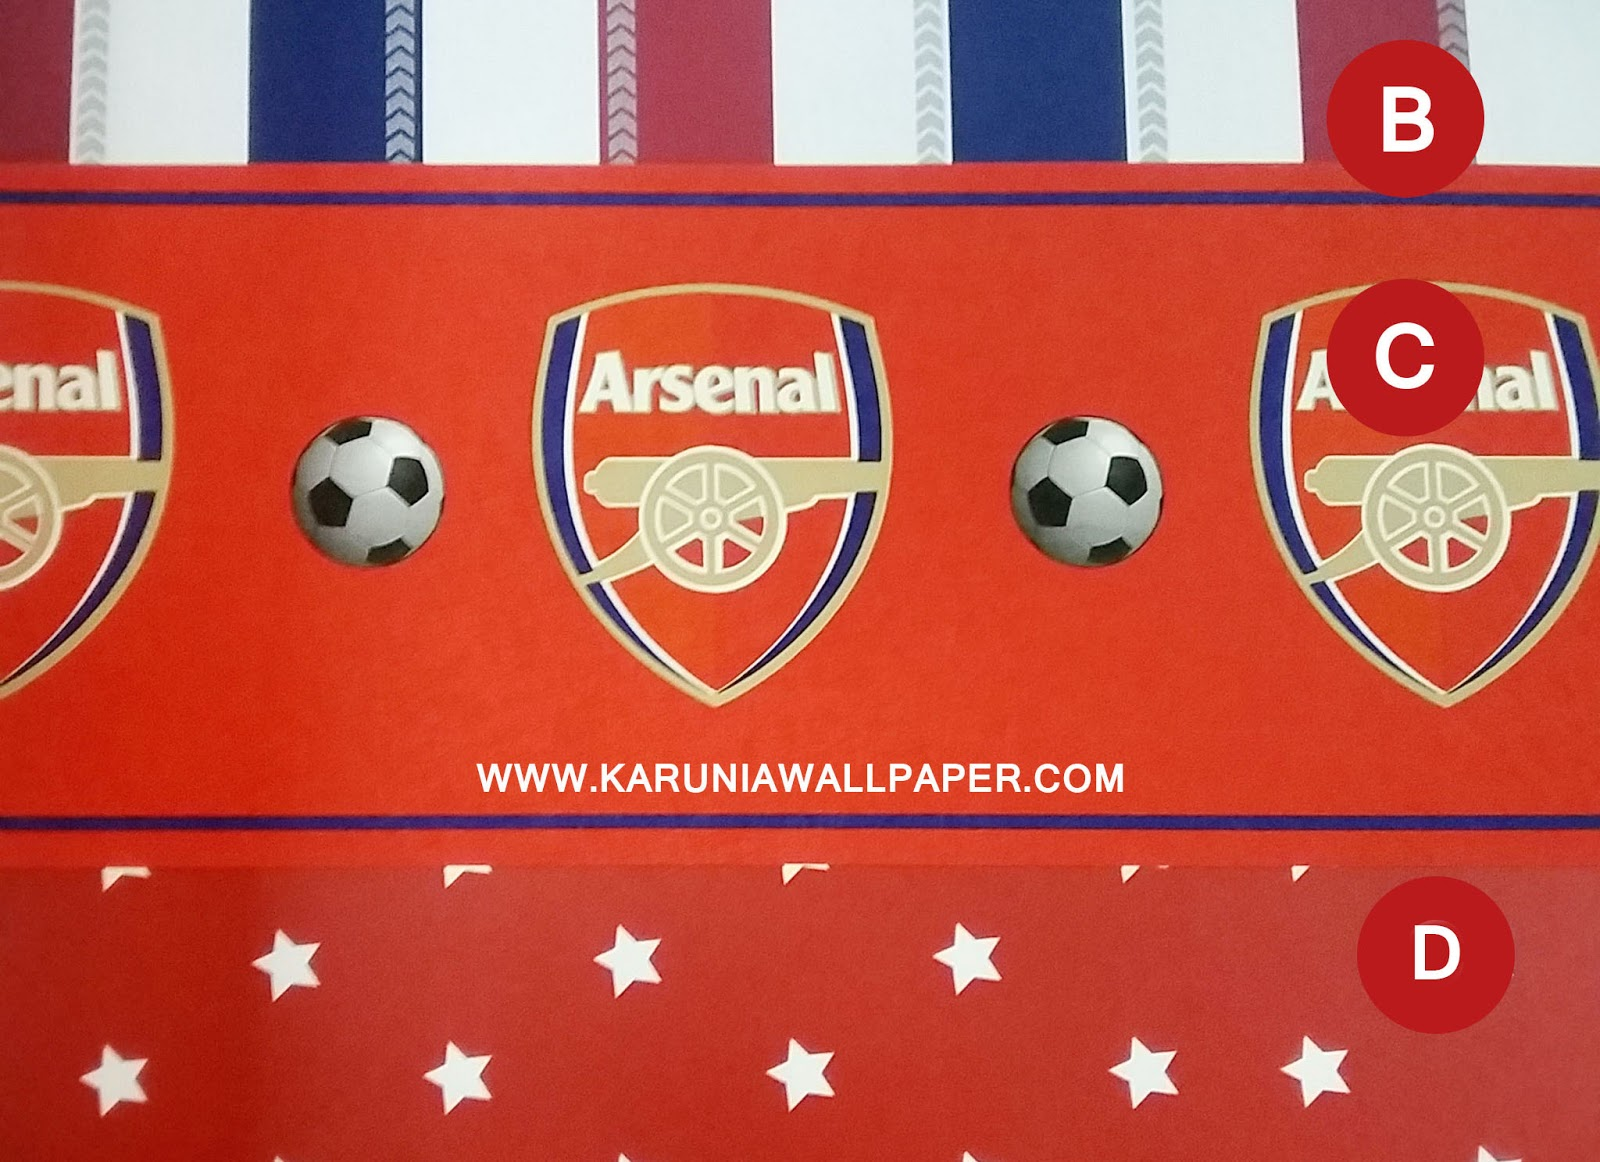 jual wallpaper motif arsenal karuniawallpaper